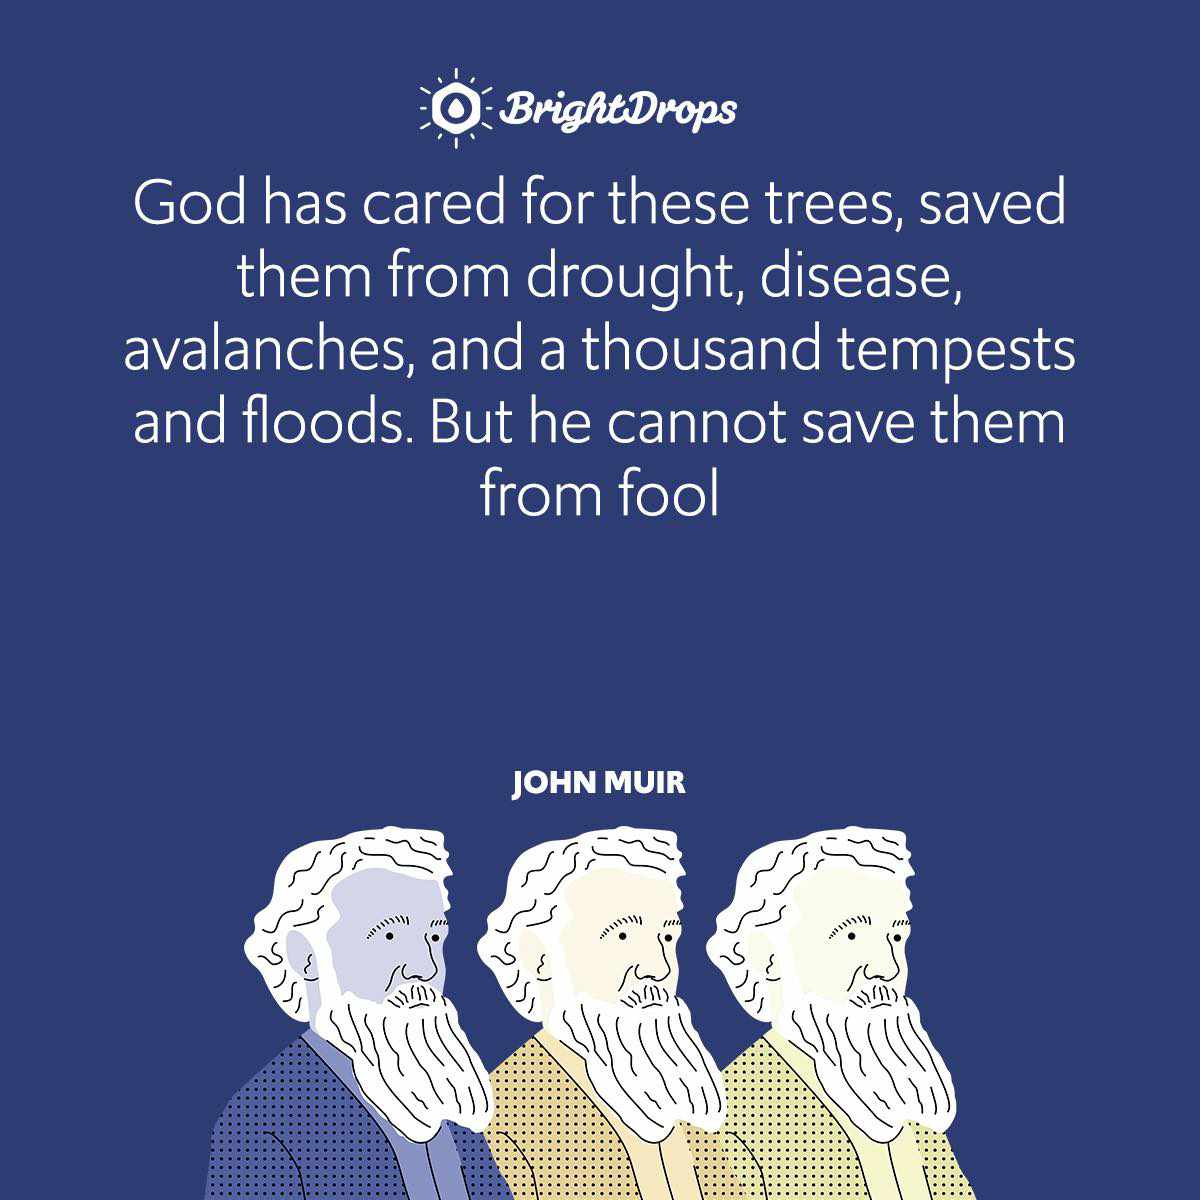 God has cared for these trees, saved them from drought, disease, avalanches, and a thousand tempests and floods. But he cannot save them from fool